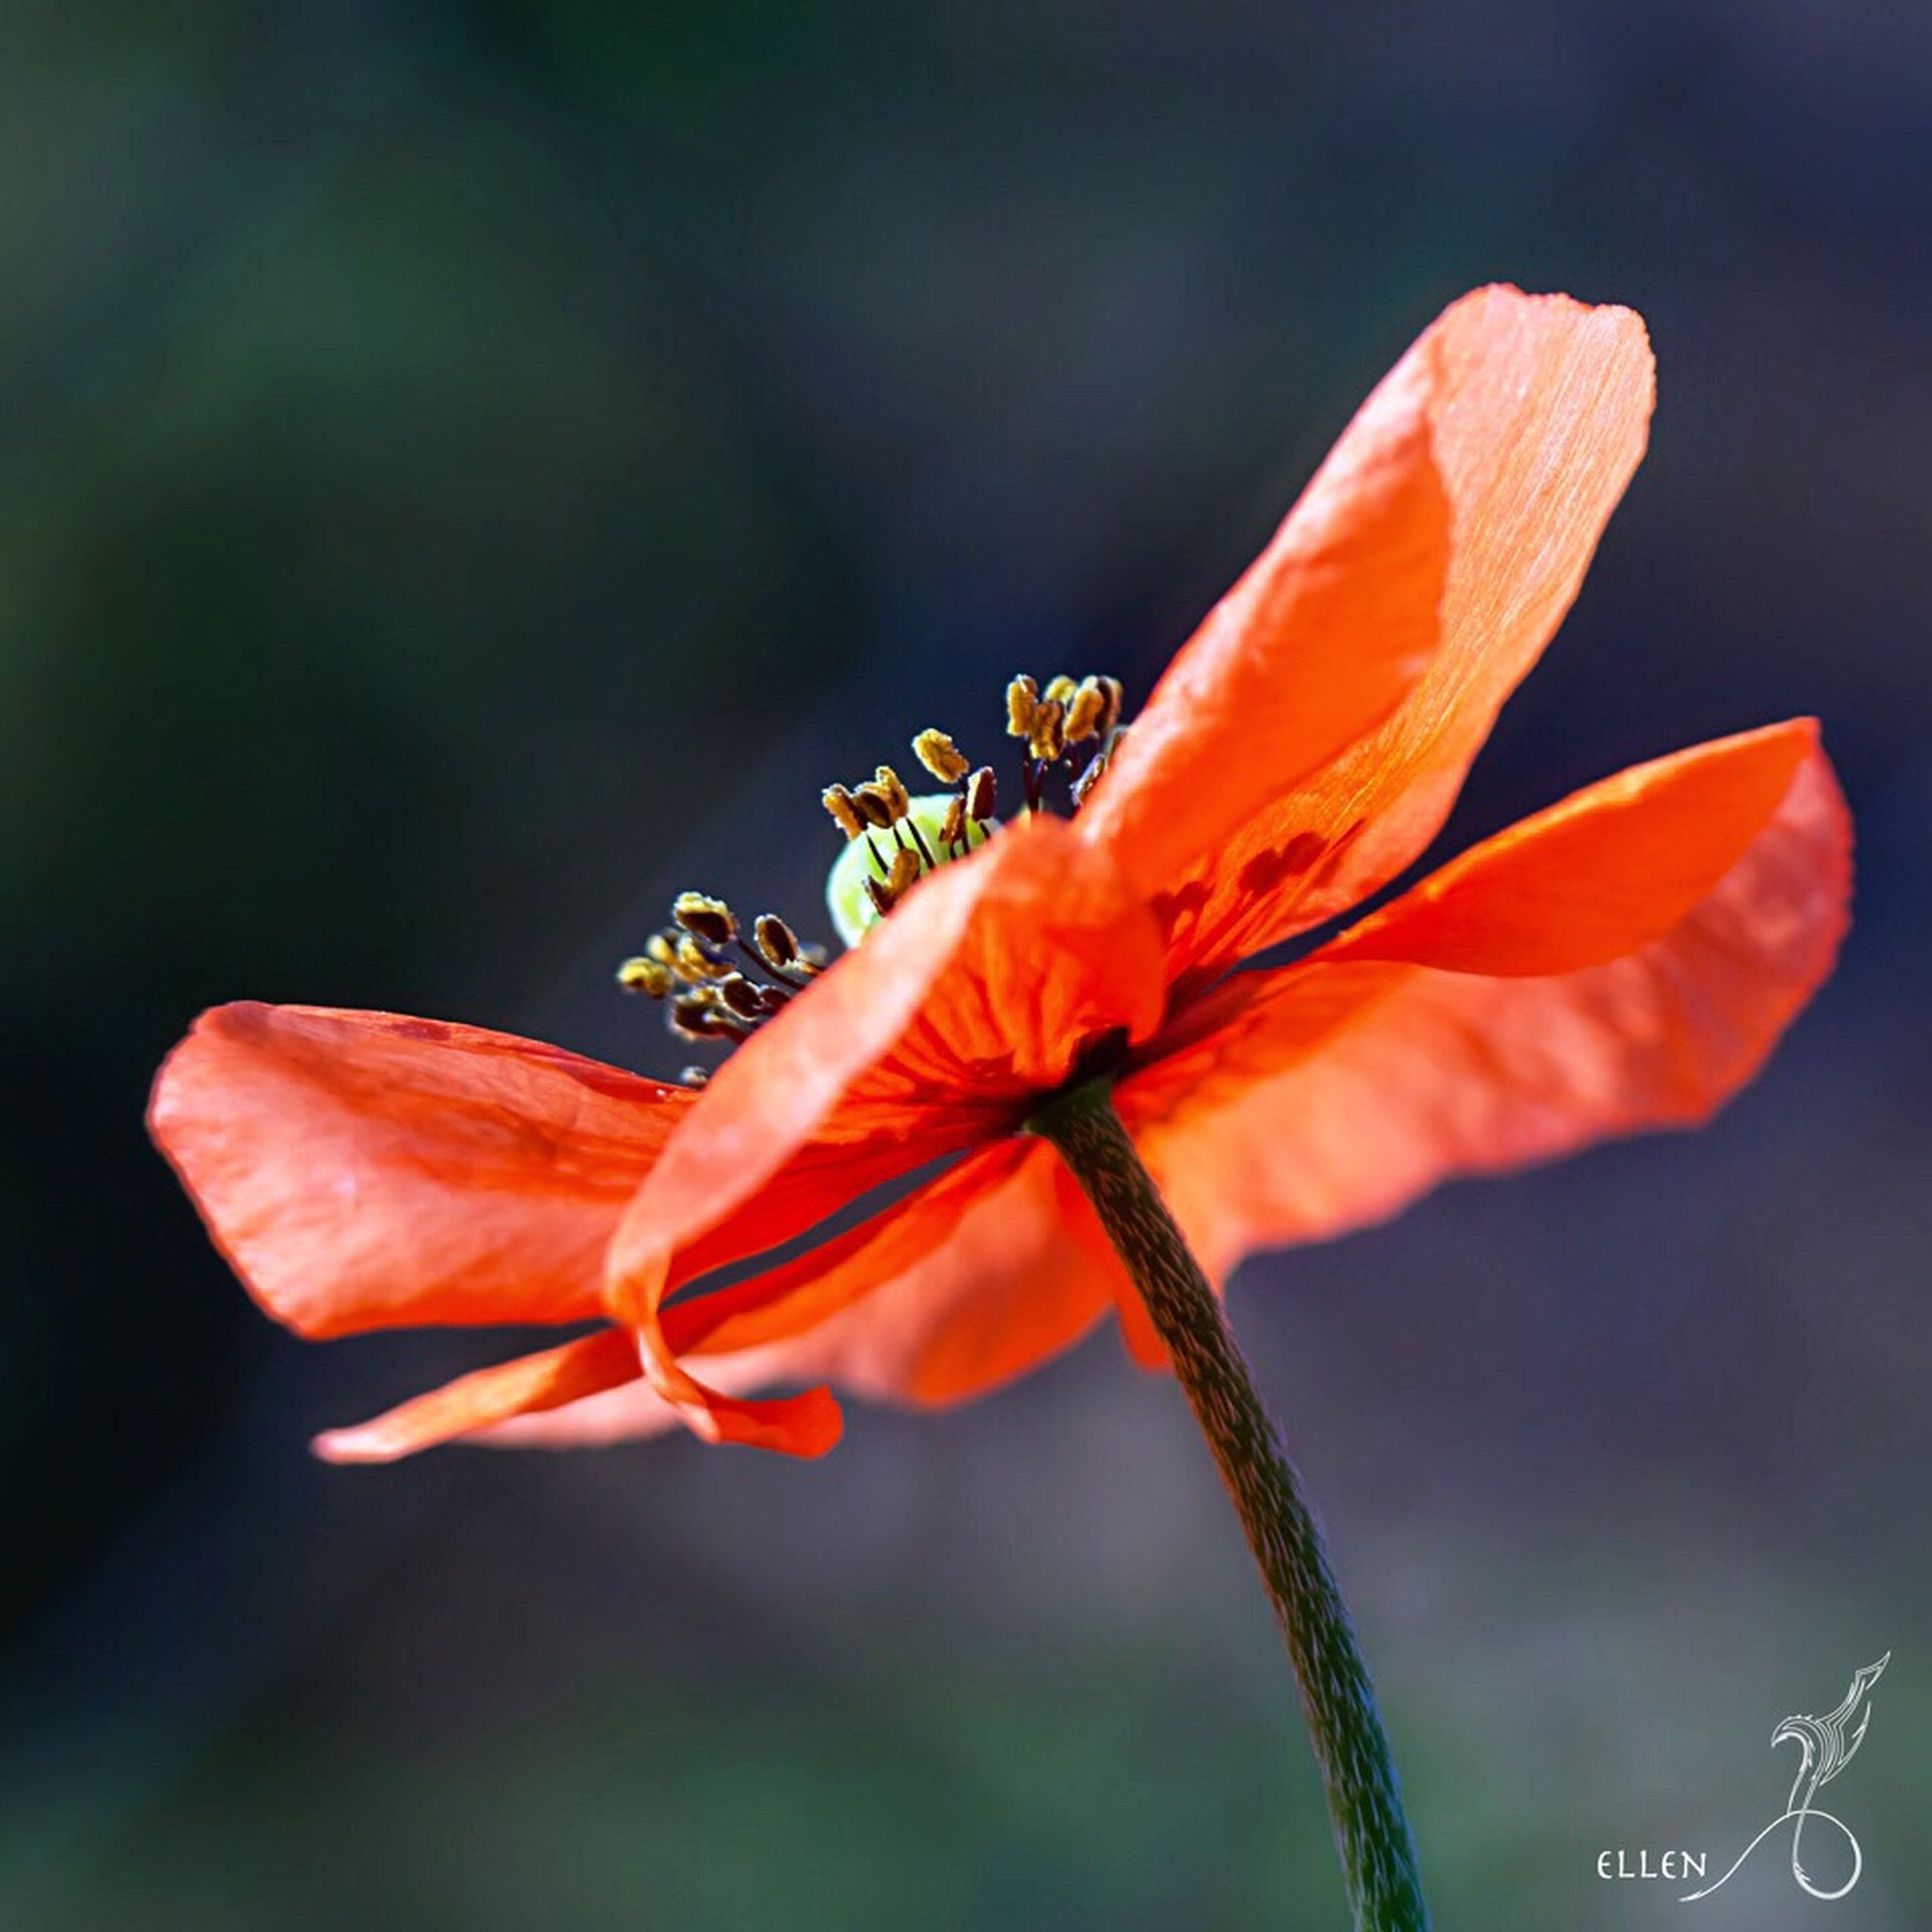 flower, fragility, petal, freshness, flower head, close-up, focus on foreground, beauty in nature, growth, nature, single flower, stamen, plant, blooming, insect, pollen, one animal, stem, animal themes, wildlife